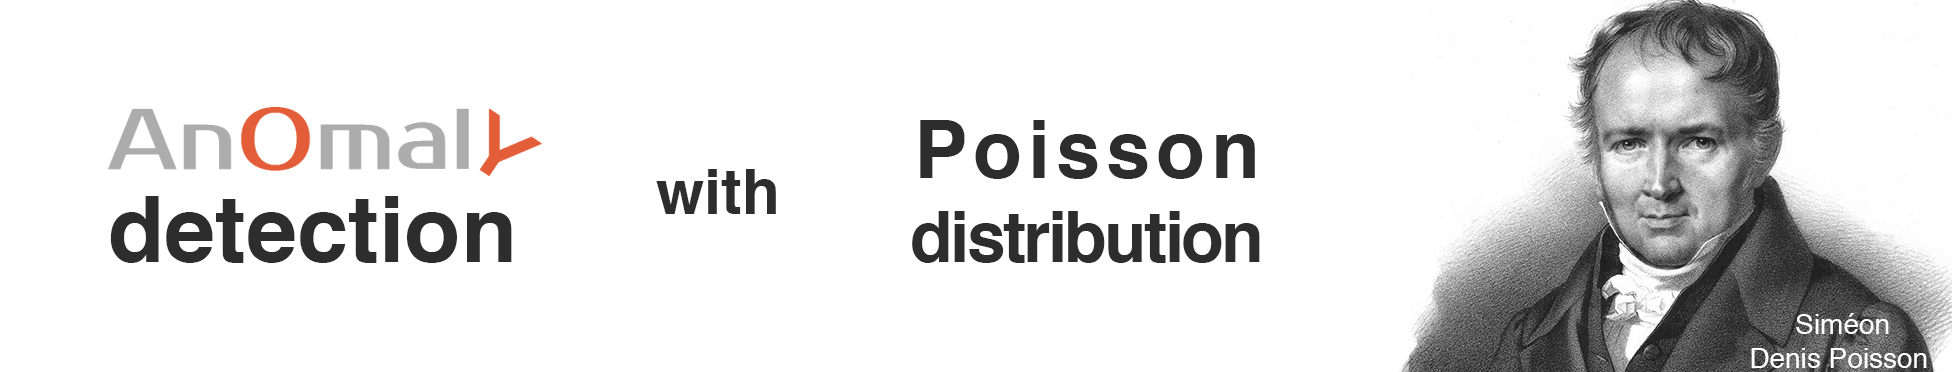 anomaly detection with poisson distribution